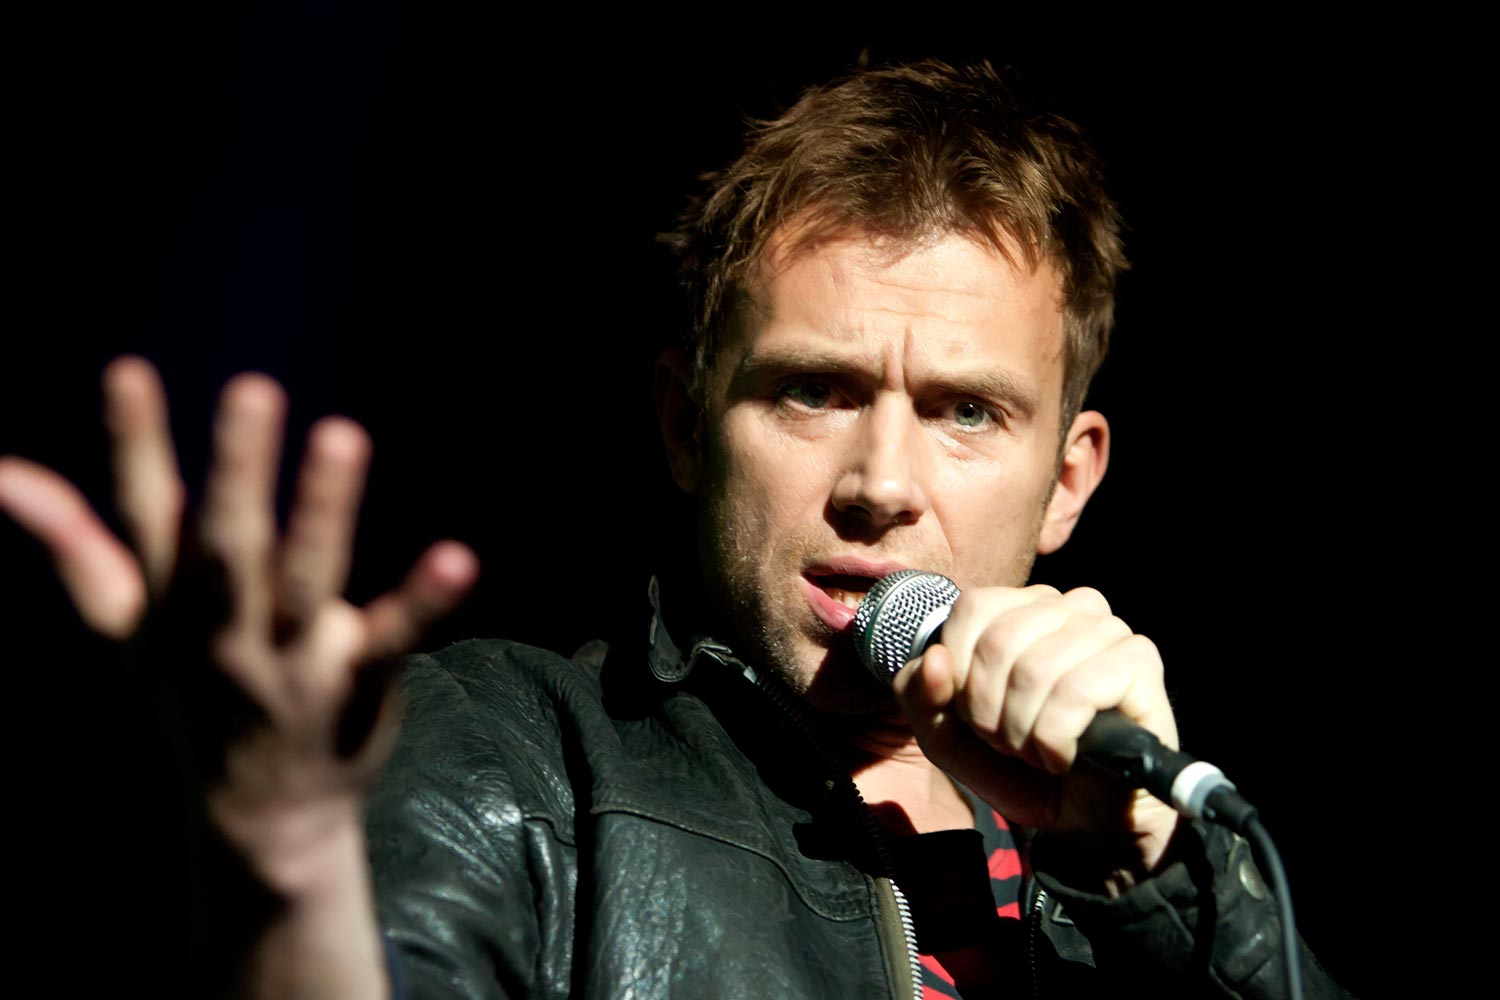 Damon Albarn Says New Music From Blur and Gorillaz is Unlikely